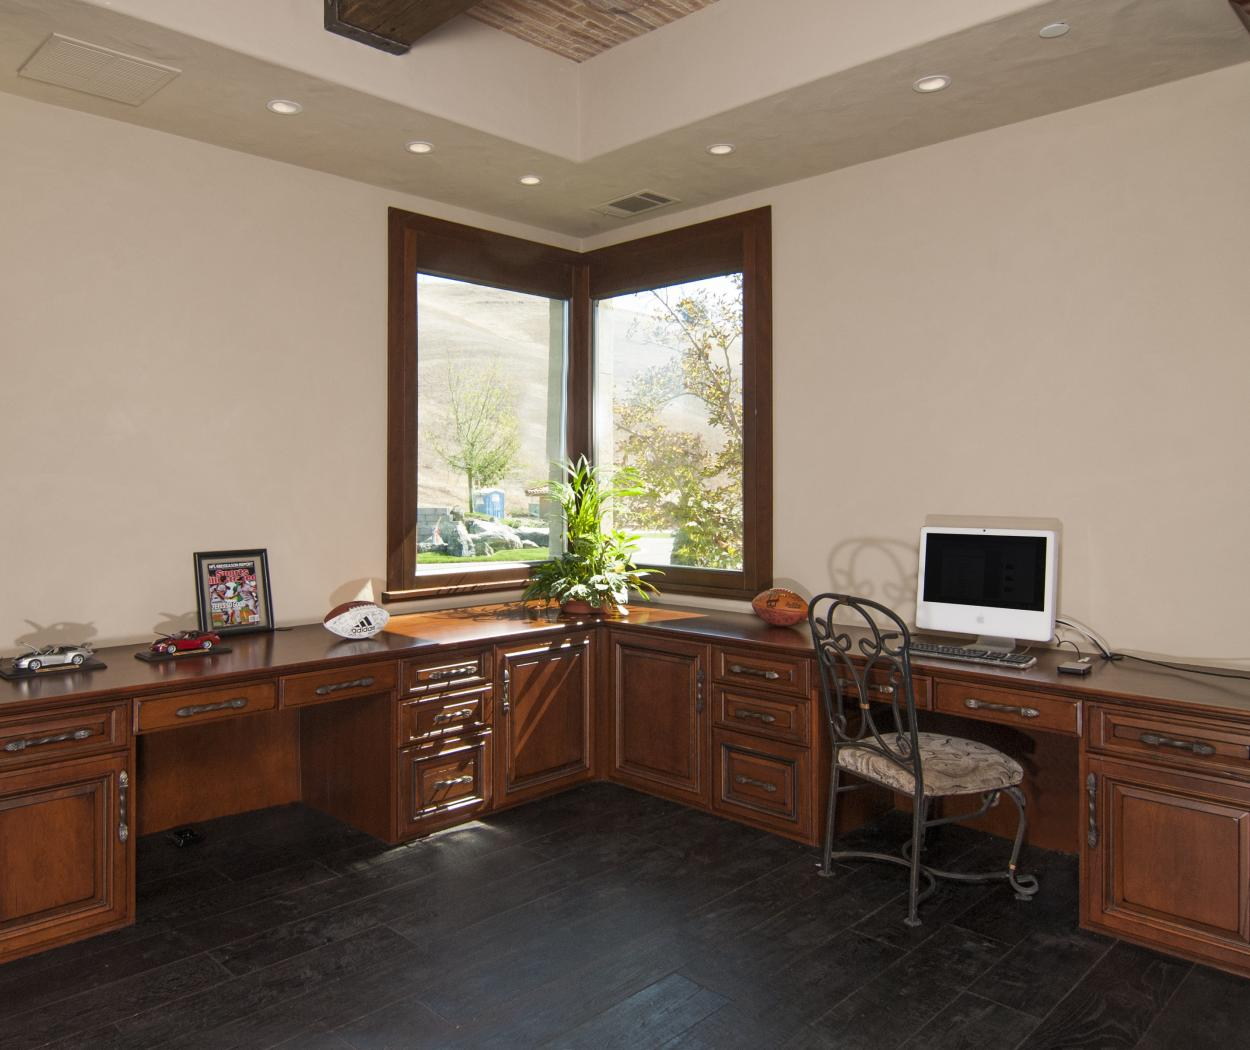 Traditional Office Built-In Desk with Wood Tops and Decorative Hardware